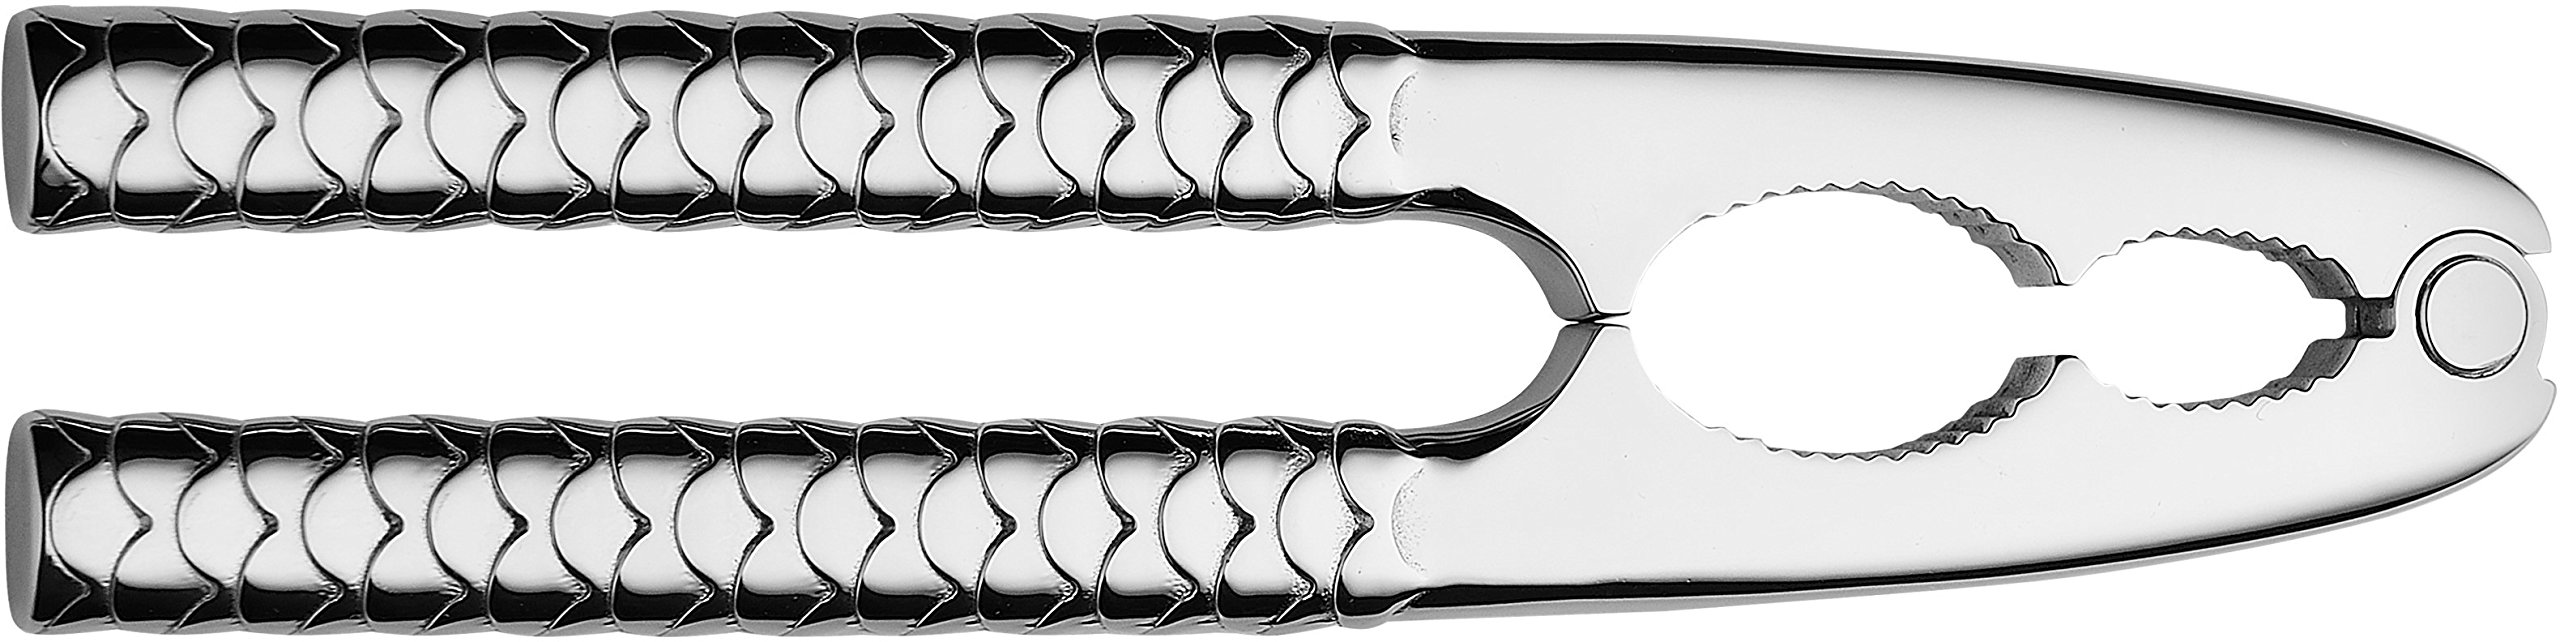 Alessi''Colombina fish'' Shellfish Cracker in 18/10 Stainless Steel Mirror Polished, Silver